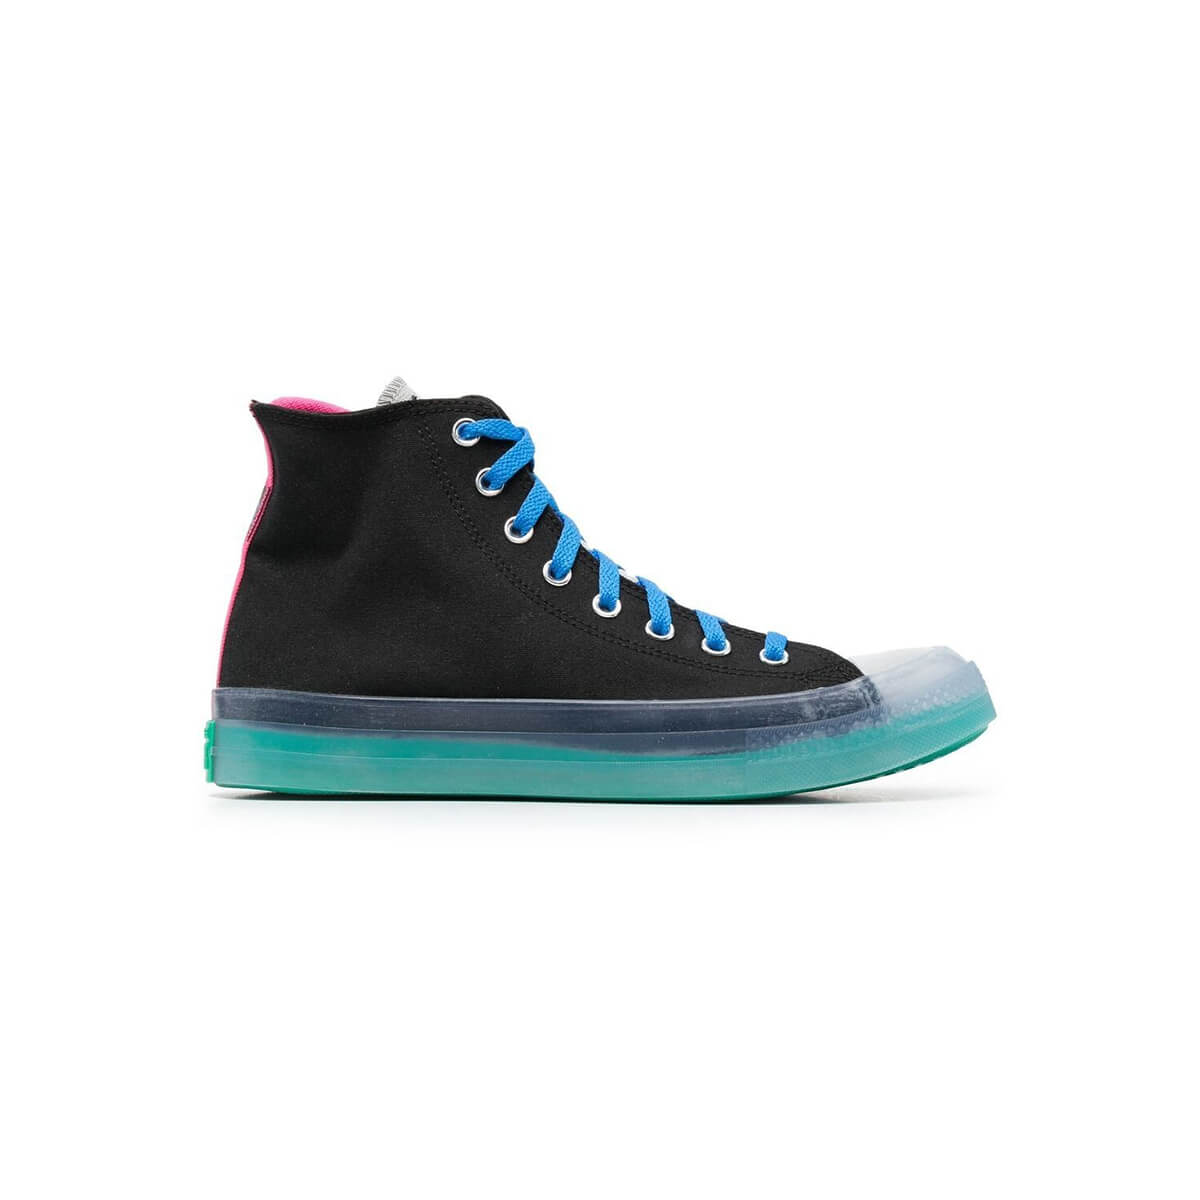 Converse Low tops HIGH-TOP LACE-UP TRAINERS